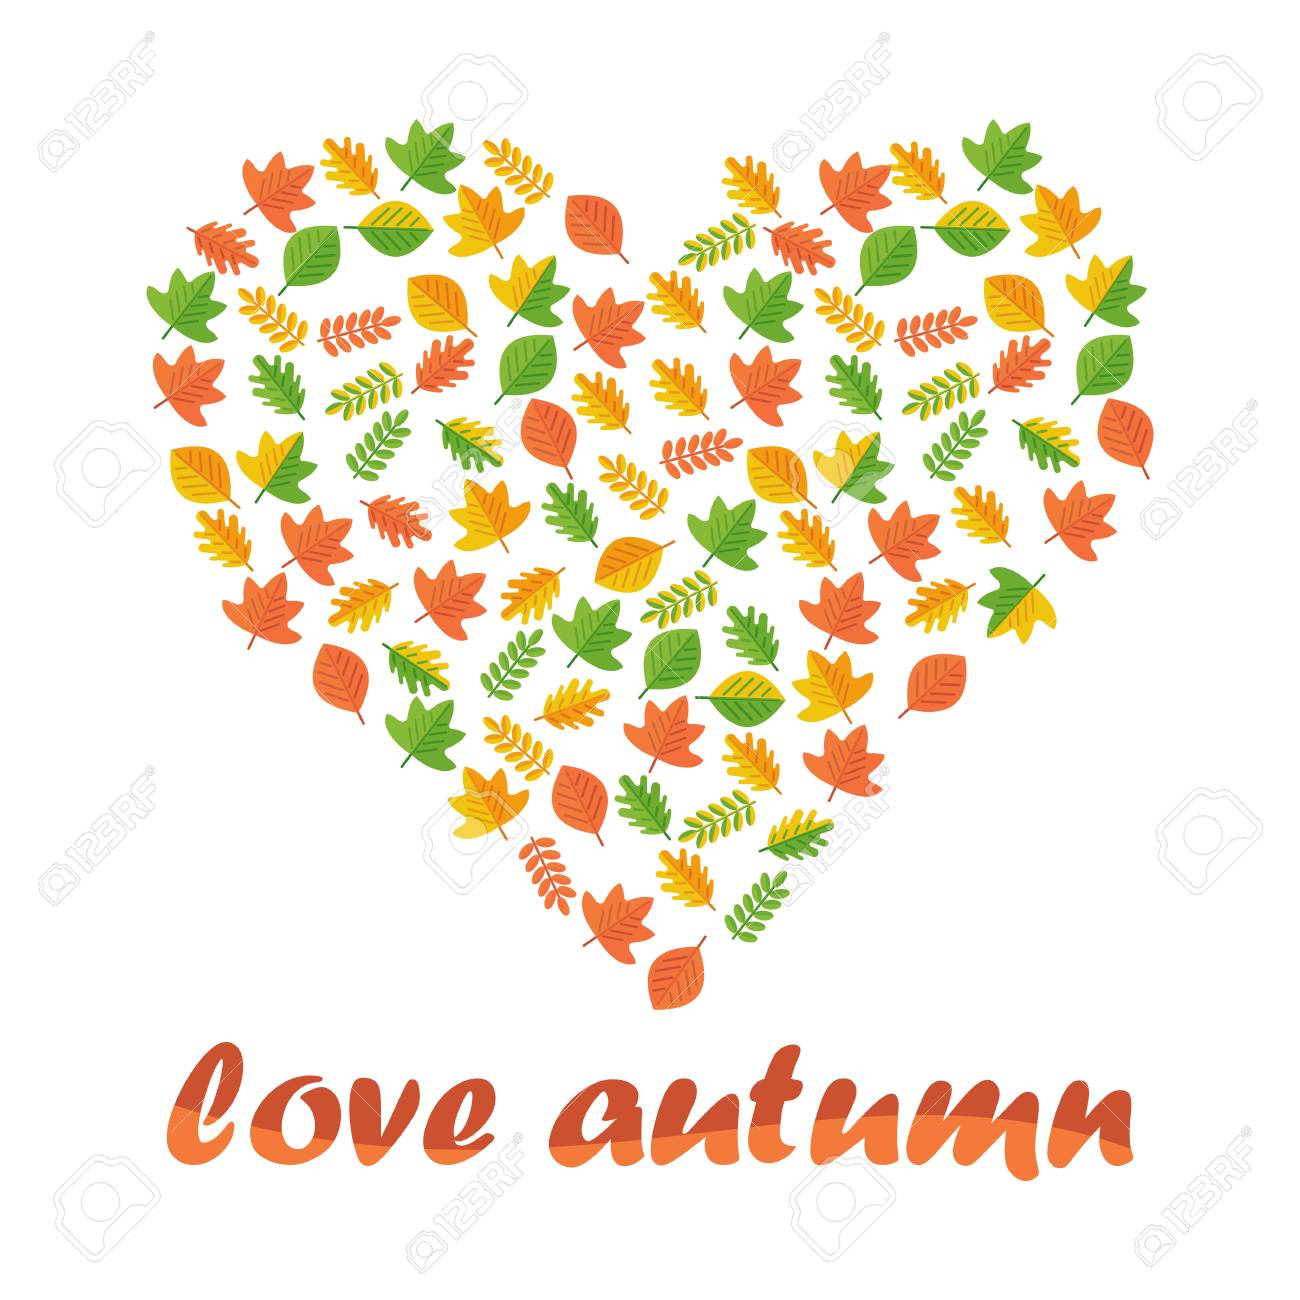 Vector heart of autumn leaves. Season fall. Elements for sites, advertising brochures, flayers, posters and info graphics. Flat cartoon vector illustration. Objects isolated on a white background. - 61773414